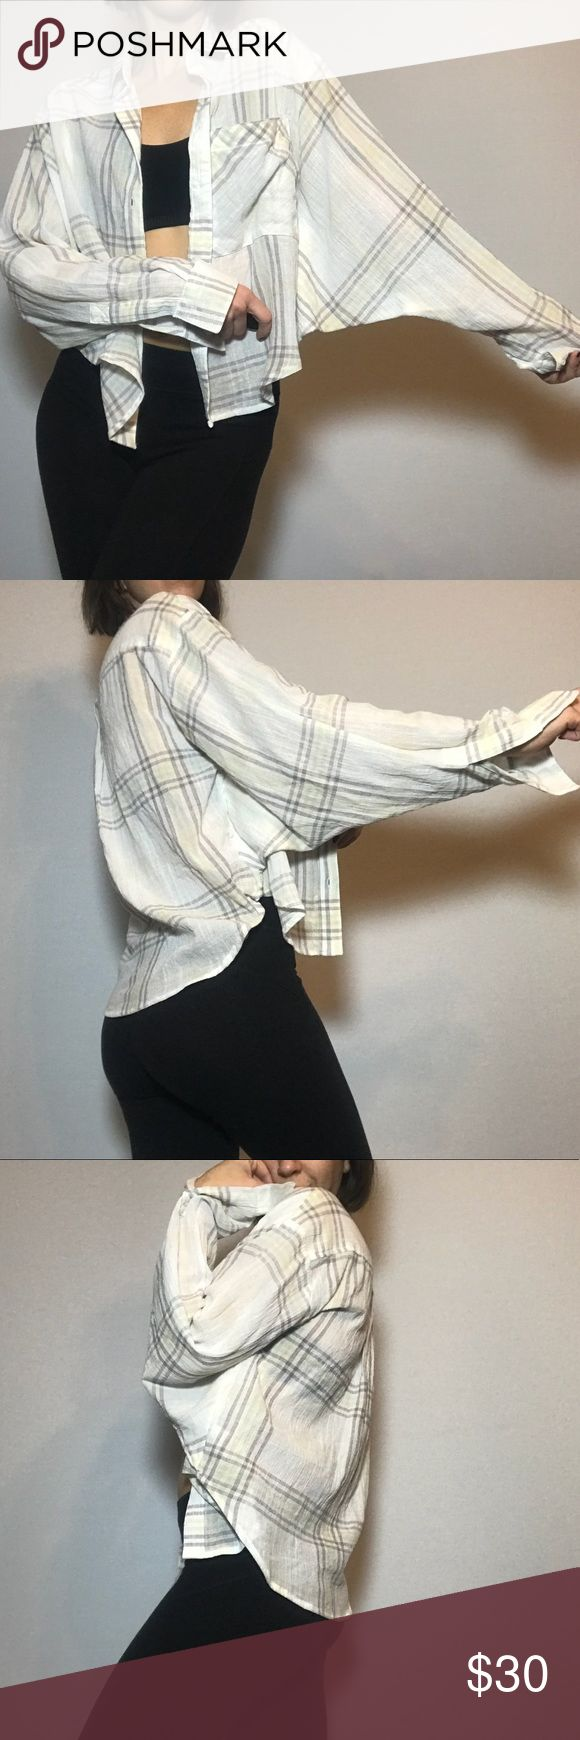 White FP plaid batwing cropped button up shirt Really unique design! Flattering cropped cut, gauzy texture. I also have this in a pastel orange. Like new condition.   No trades, other apps, or holds! 🚫 Make offers thru button not comments. 👍🏼 Usually shipped the same or next day. 📬 Clean, smoke free, cat friendly home. 🐈 Feel free to ask questions! 📩 Free People Tops Button Down Shirts